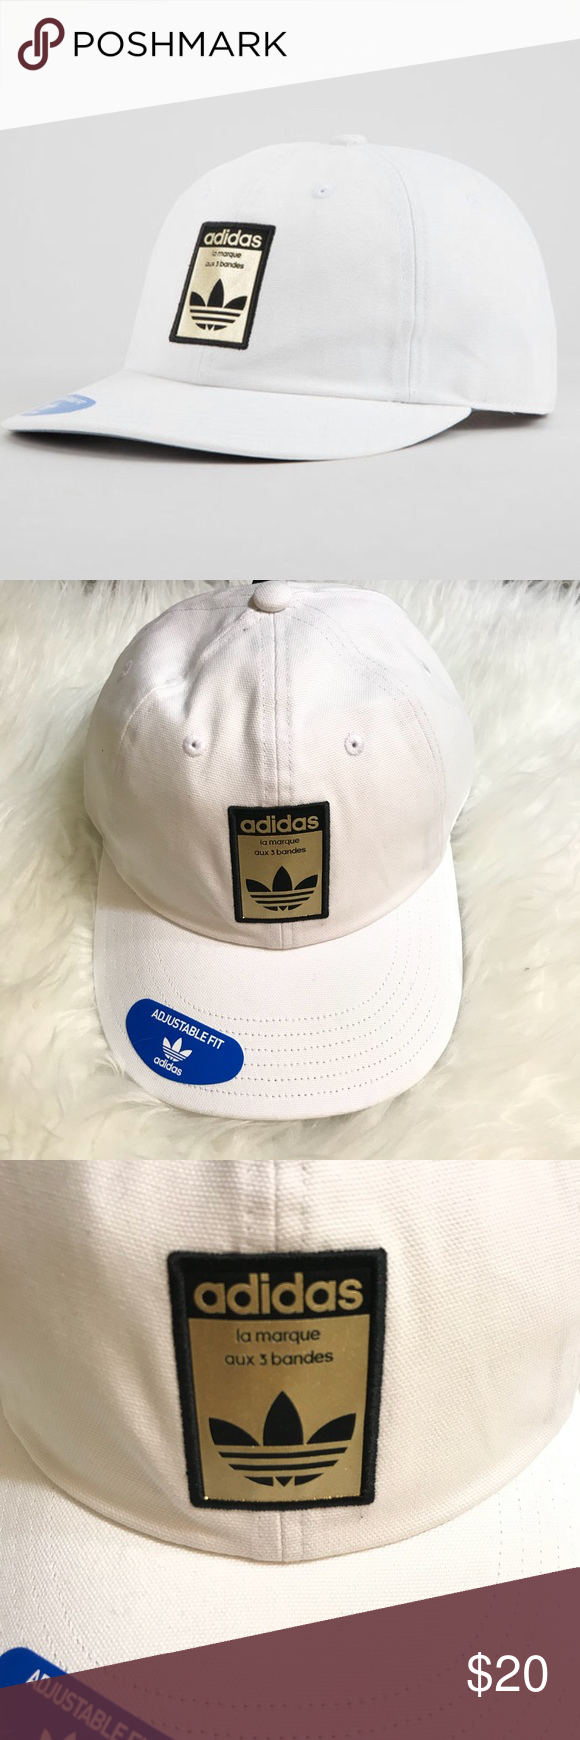 9a187aa703f Adidas Originals Relaxed Base White Strapback Hat Adidas Originals Relaxed  Base strapback hat. Metallic gold adidas Trefoil patch on the front.